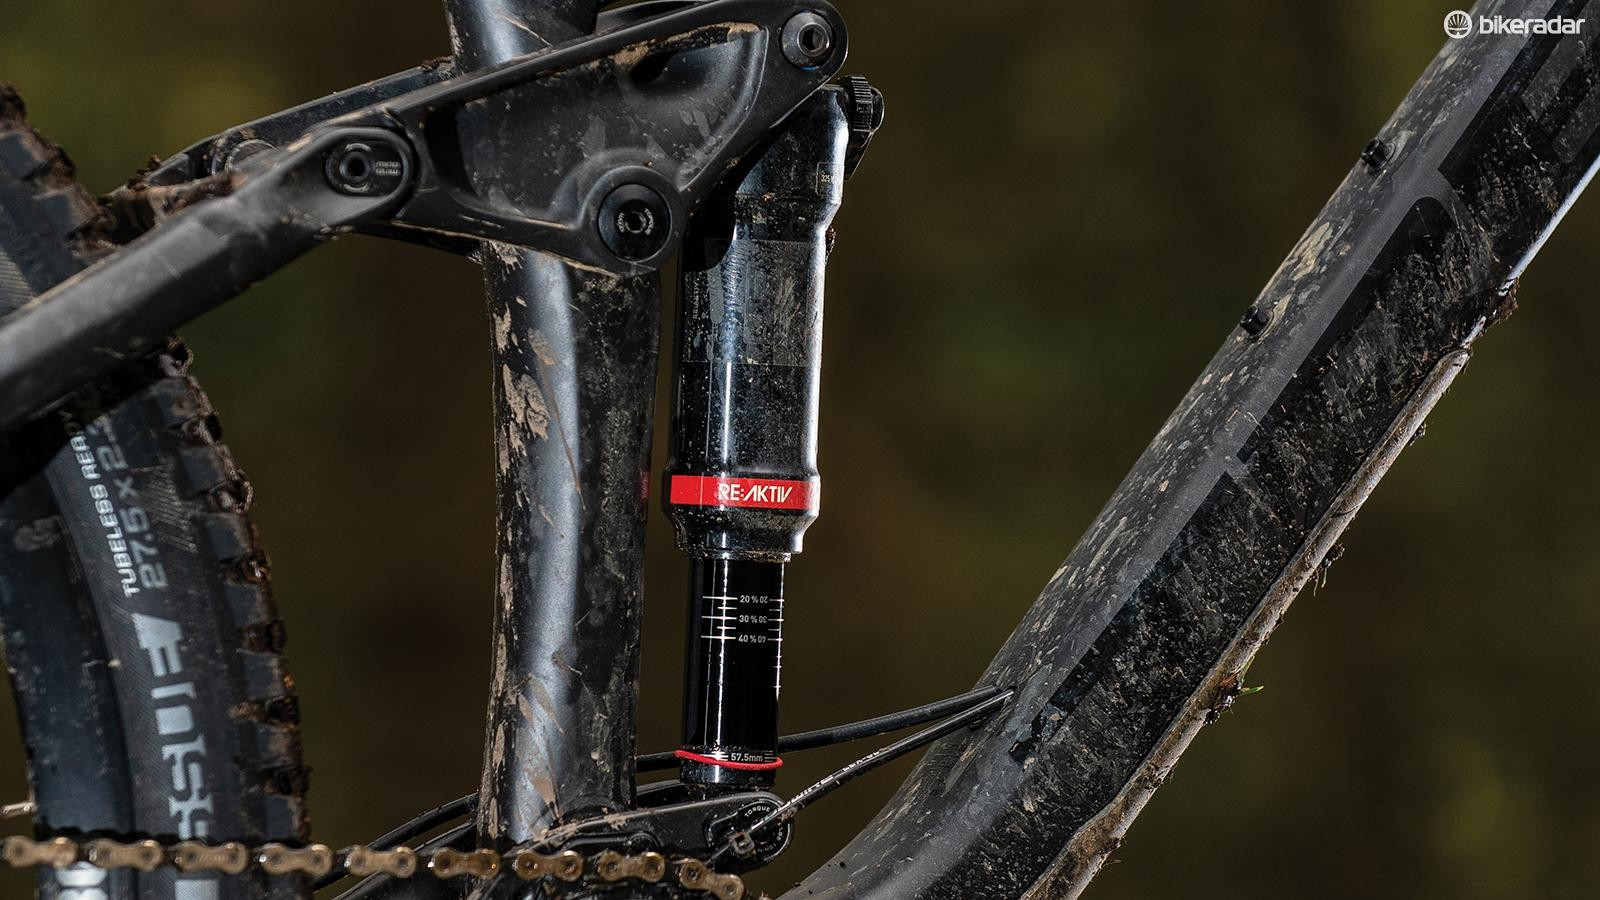 The top-end RockShox Deluxe RT3 shock comes with Trek's proprietary RE:aktiv internals